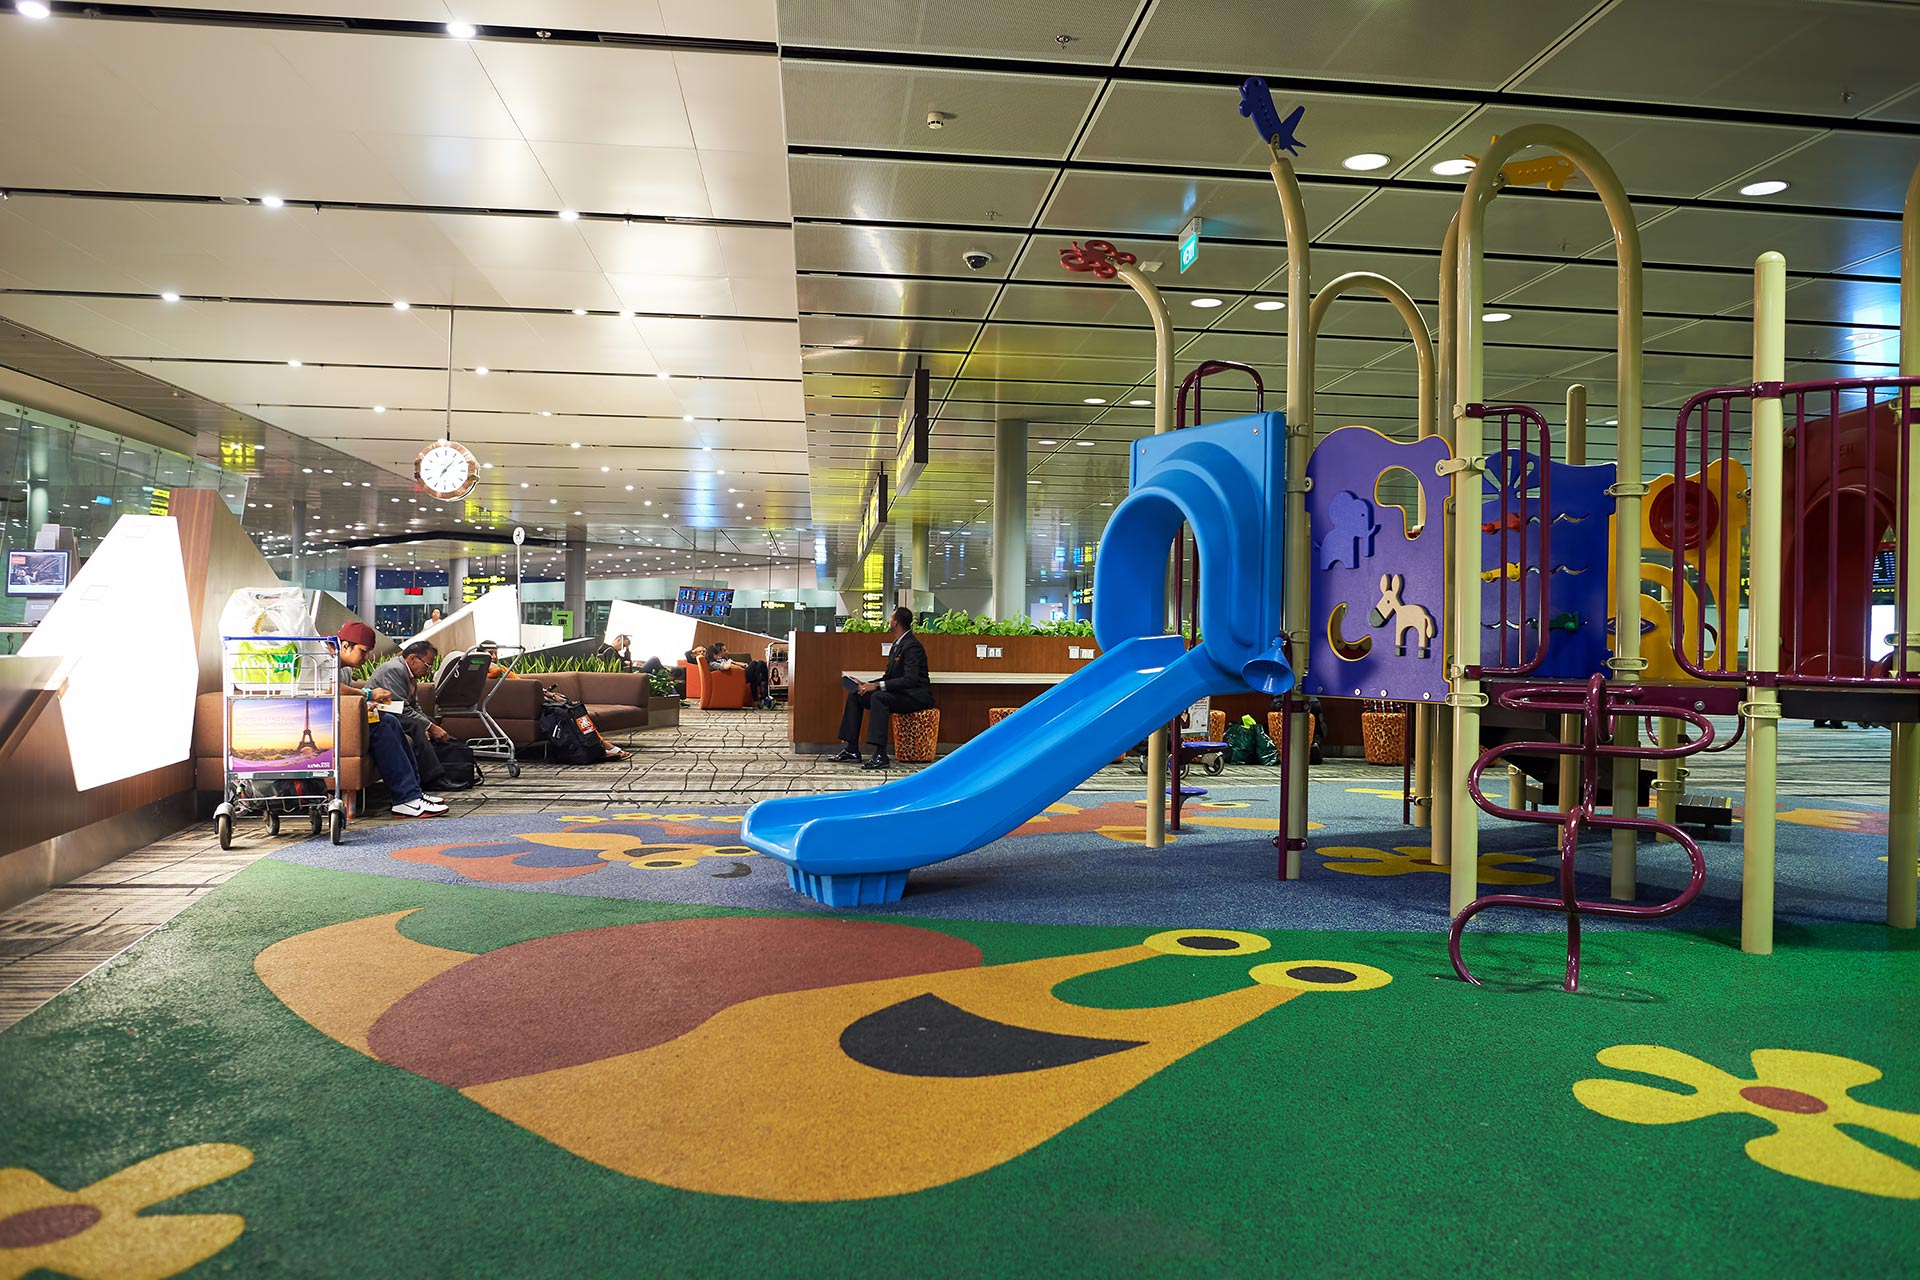 Play area at Singapore Changi Airport.